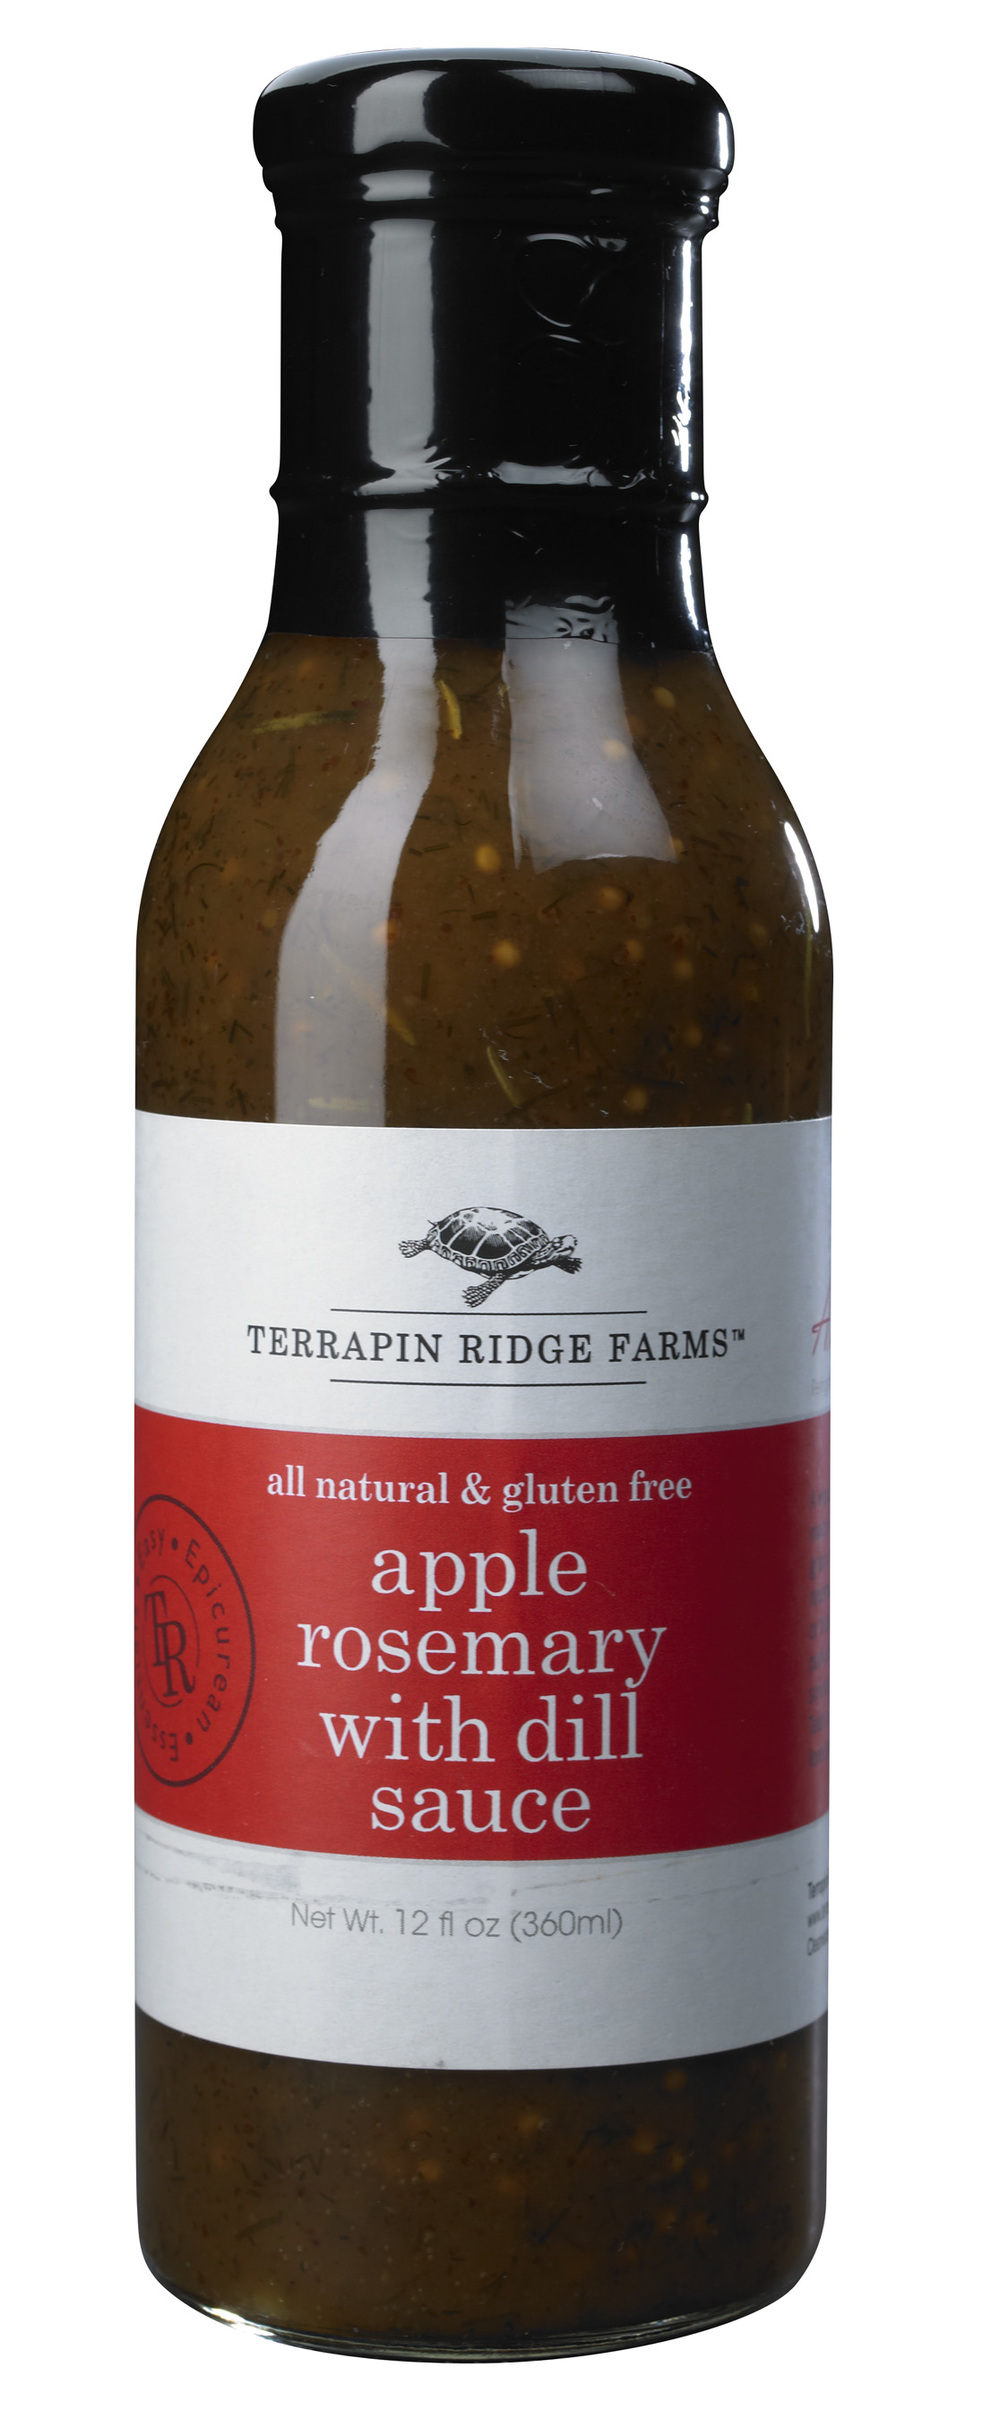 TERRAPIN RIDGE FARMS: Apple Rosemary with Dill Sauce